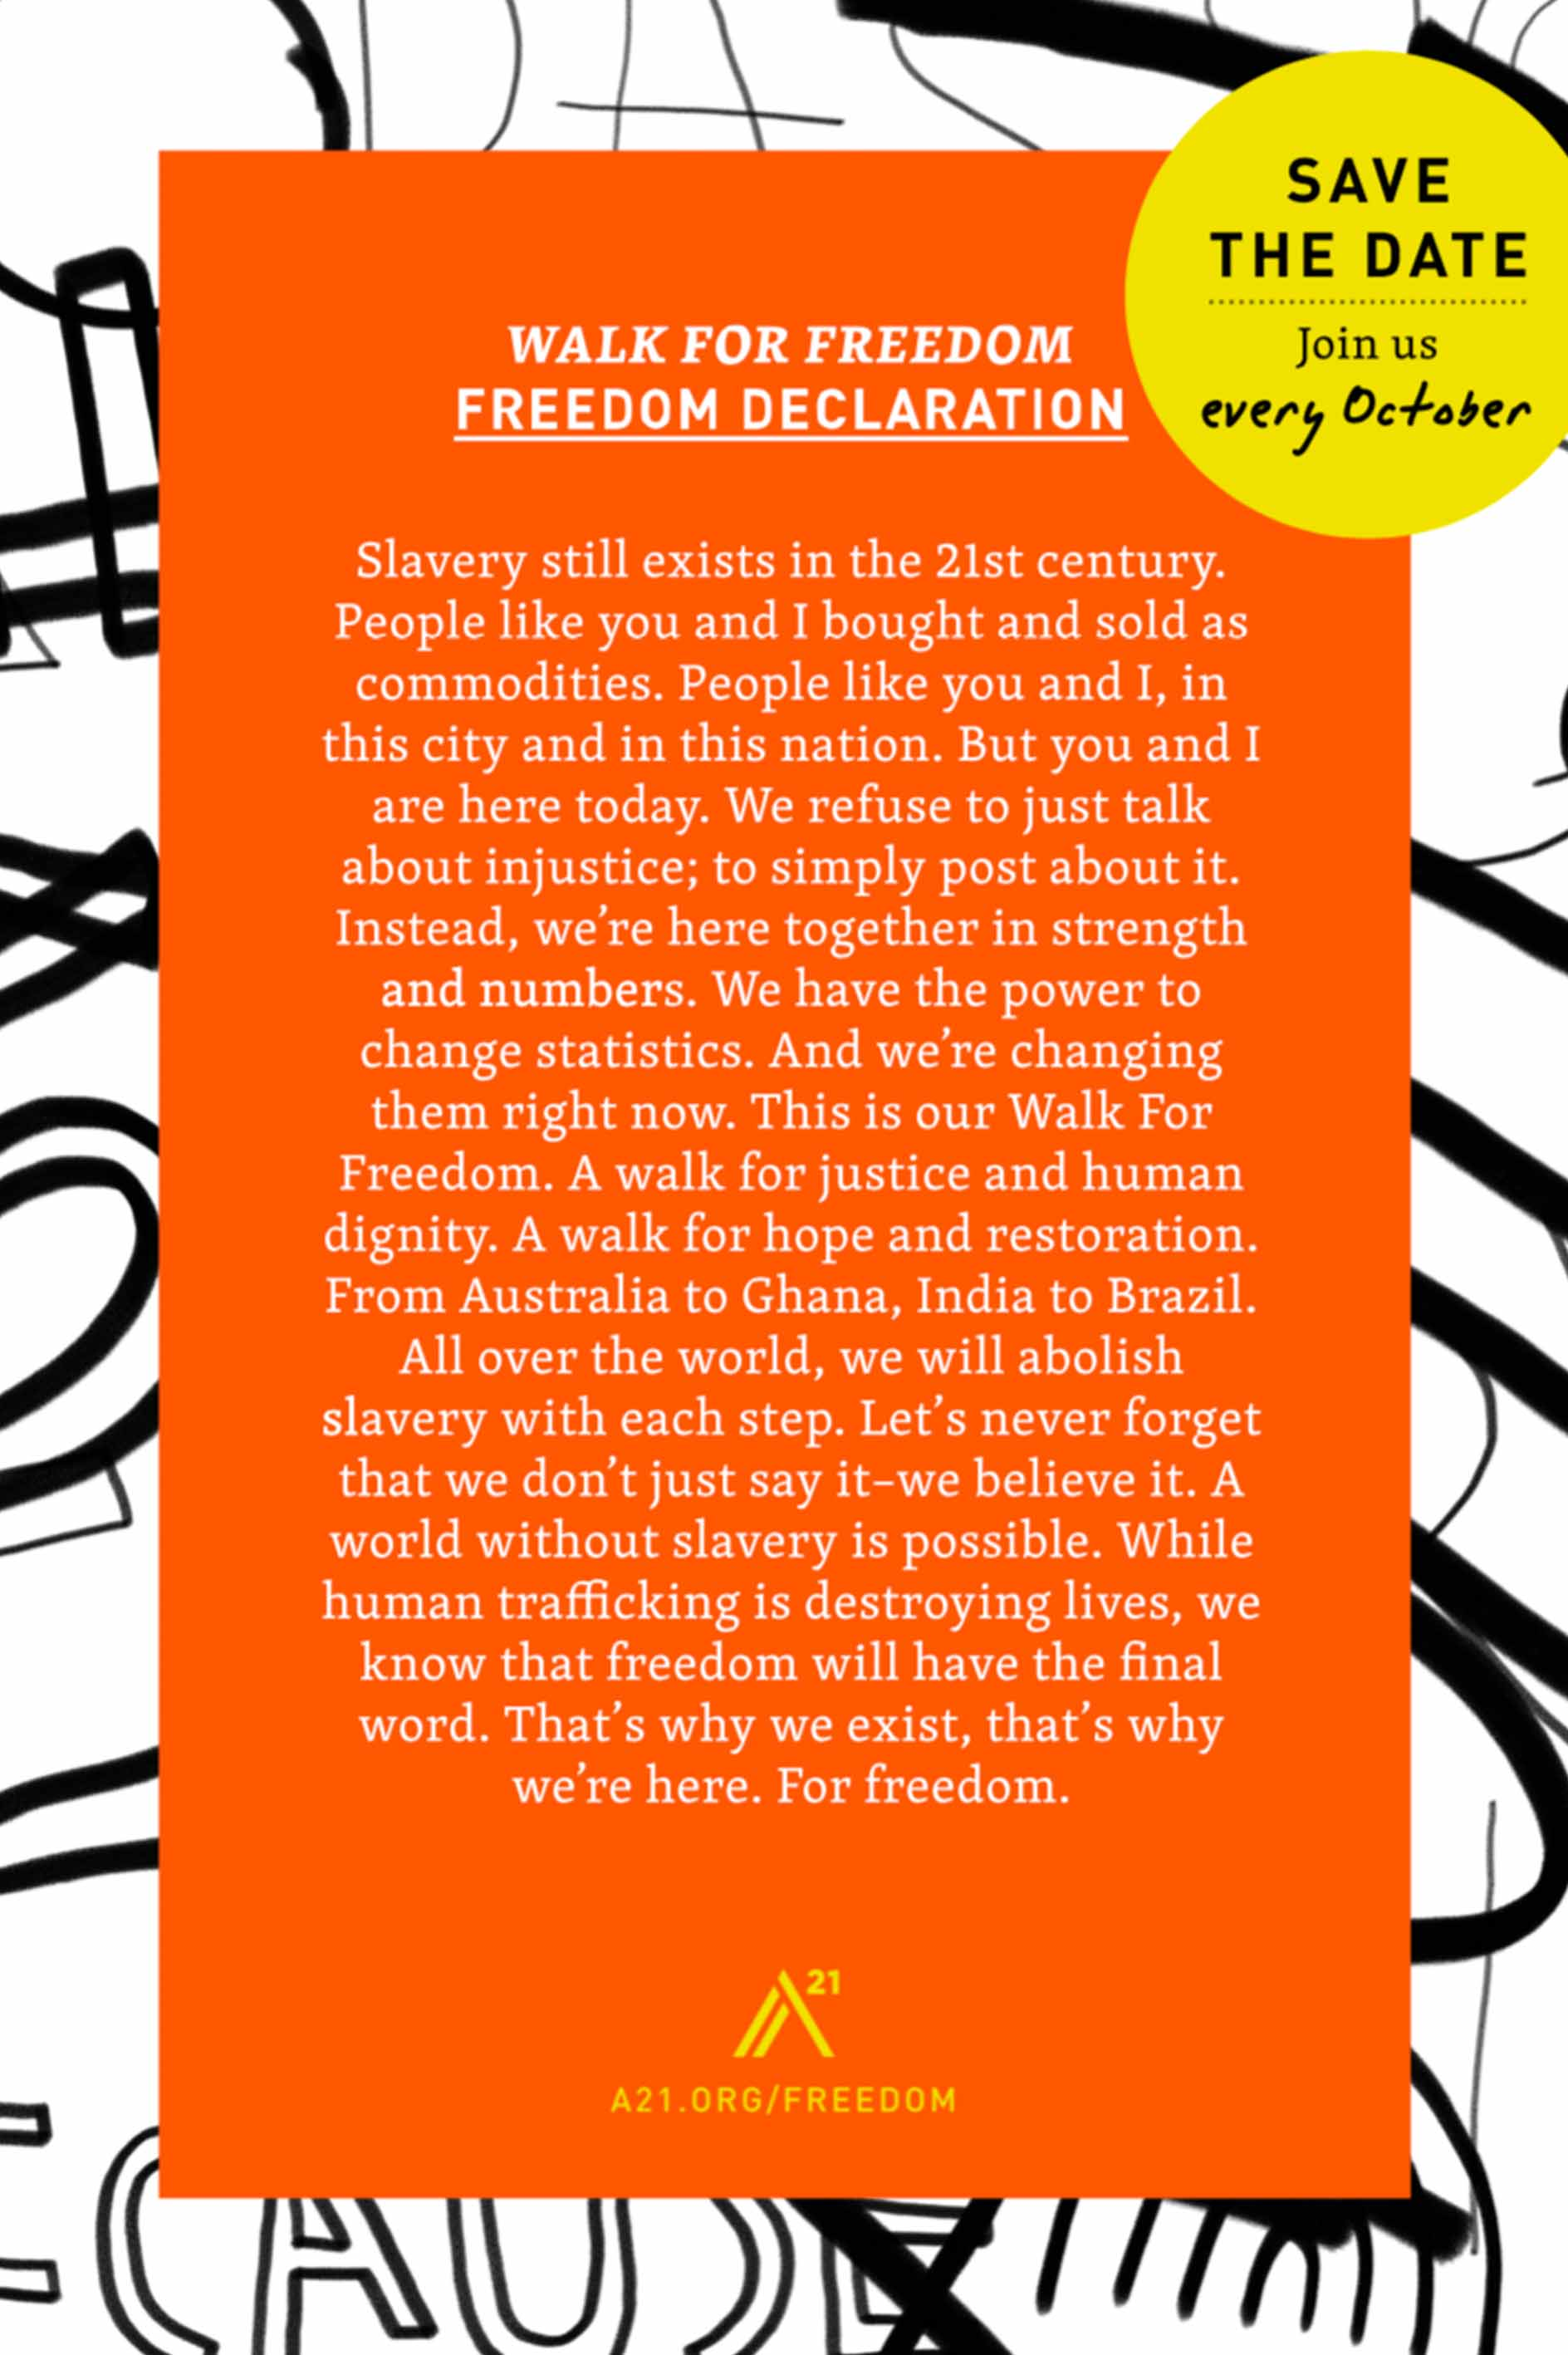 Poster 8: Walk For Freedom: Freedom Declaration: Wave the date. Join us every October. Slavery still exists in the 21st century. People like you and I, bought and sold as commodities. People like you and I, in this city and in this nation. But you and I are here today. We refuse to just talk about injustice; to simply post about it. Instead, we're here together in strength and numbers. We have the power to change statistics. And we're changing them right now. This is our Walk For Freedom. A walk for justice and human dignity. A walk for hope and restoration. From Australia to Ghana, India to Brazil. All over the world, we will abolish slavery with each step. Let's never forget that we don't just say it– we believe it. A world without slavery is possible. While human trafficking is destroying lives, we know that freedom will have the final word. That's why we exist, that's why we're here. For freedom.